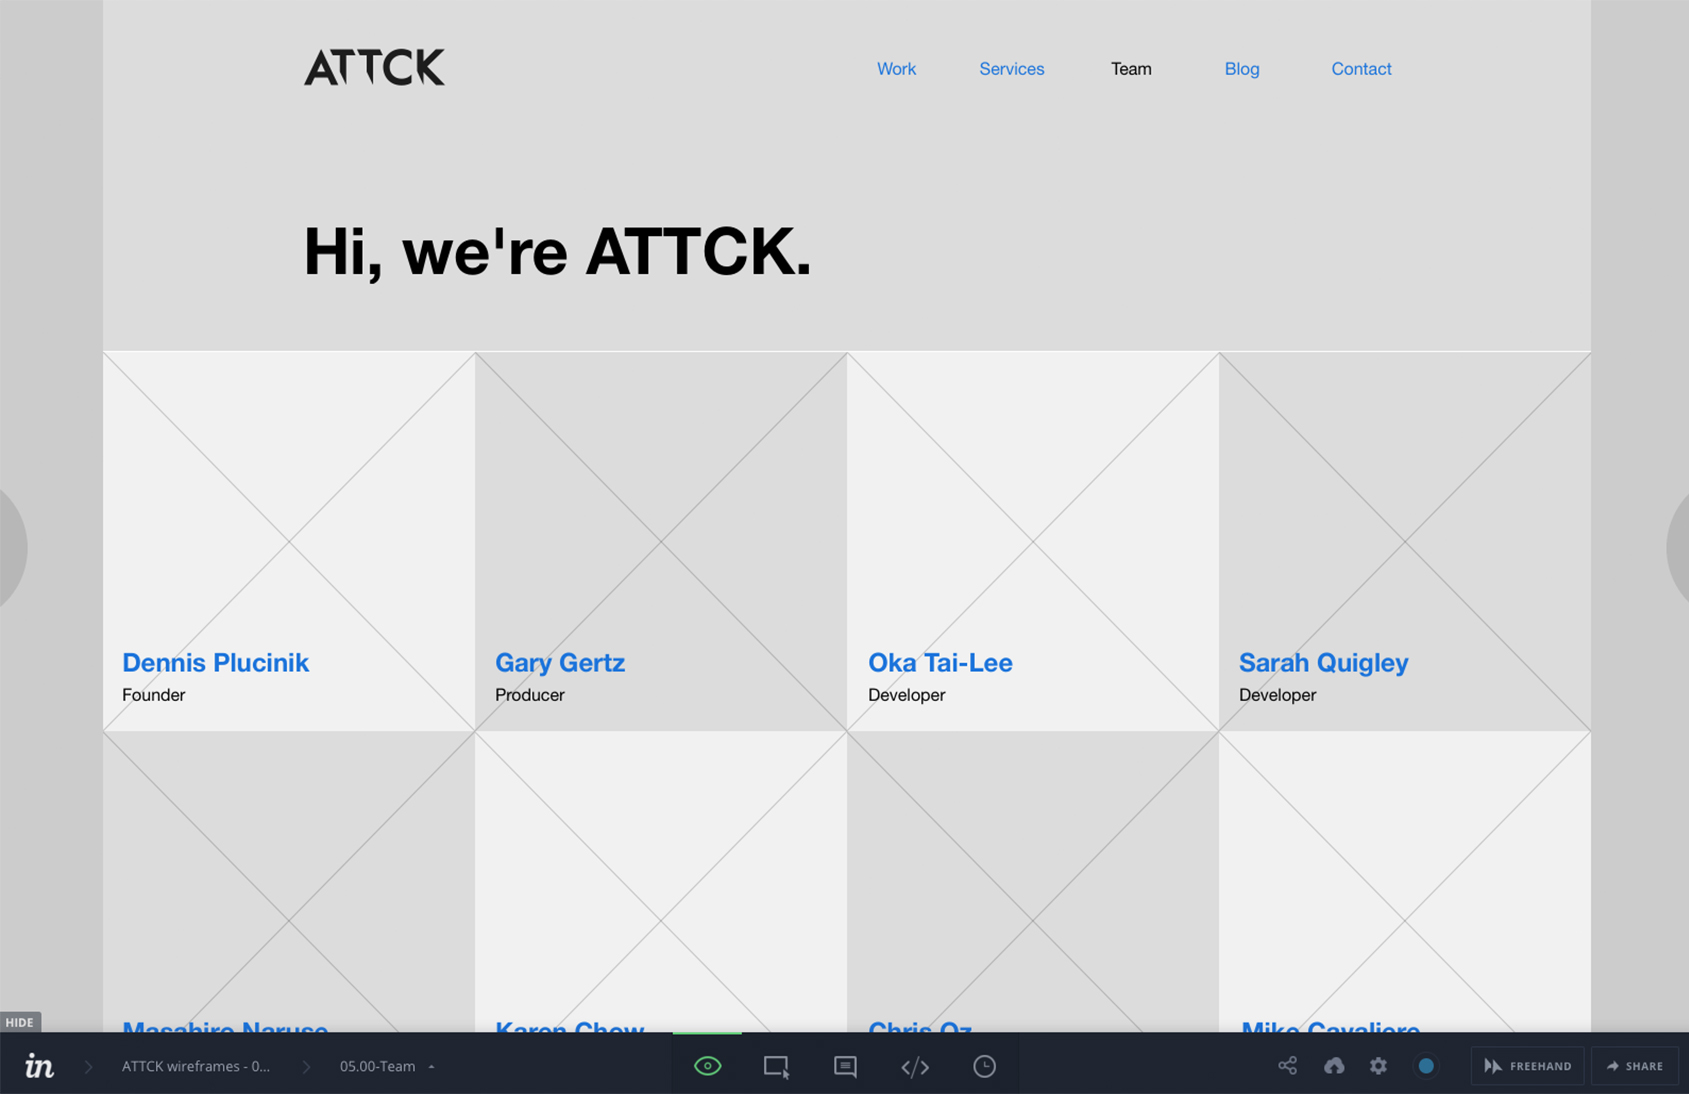 wireframe of ATTCK.com's team page